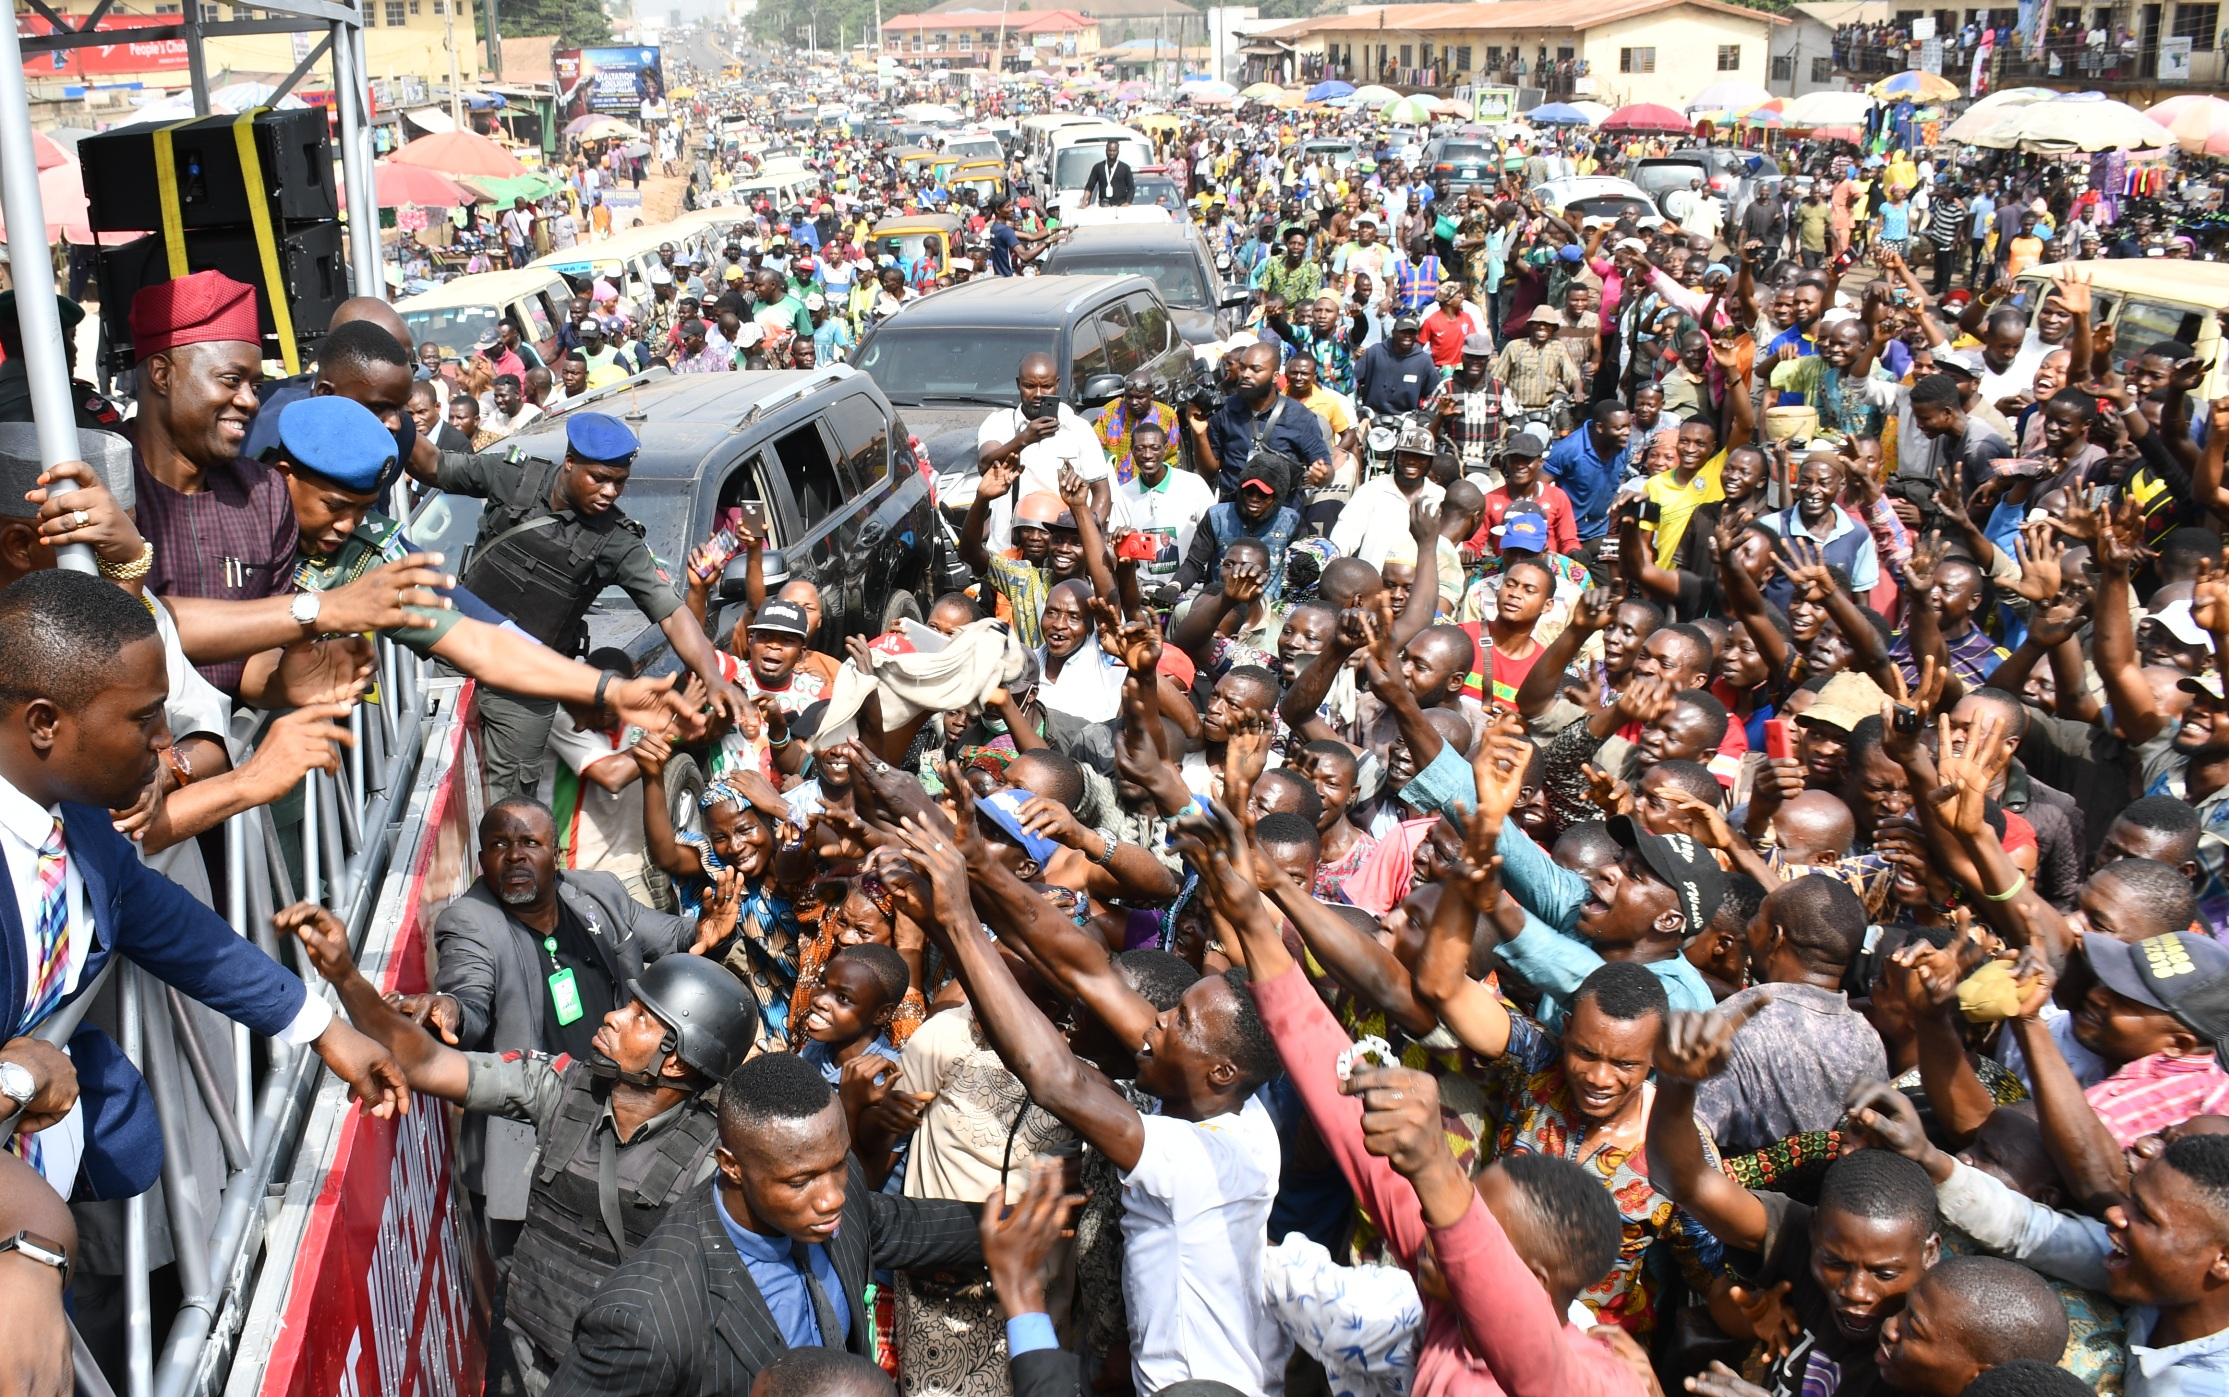 Oyo State Governor, Engr Seyi Makinde (left) acknowledging cheers  from mammoth crowd of supporters in Ibadan, Oyo State capital during a thank you rally over his victory at supreme Court. PHOTO: Oyo State Government.